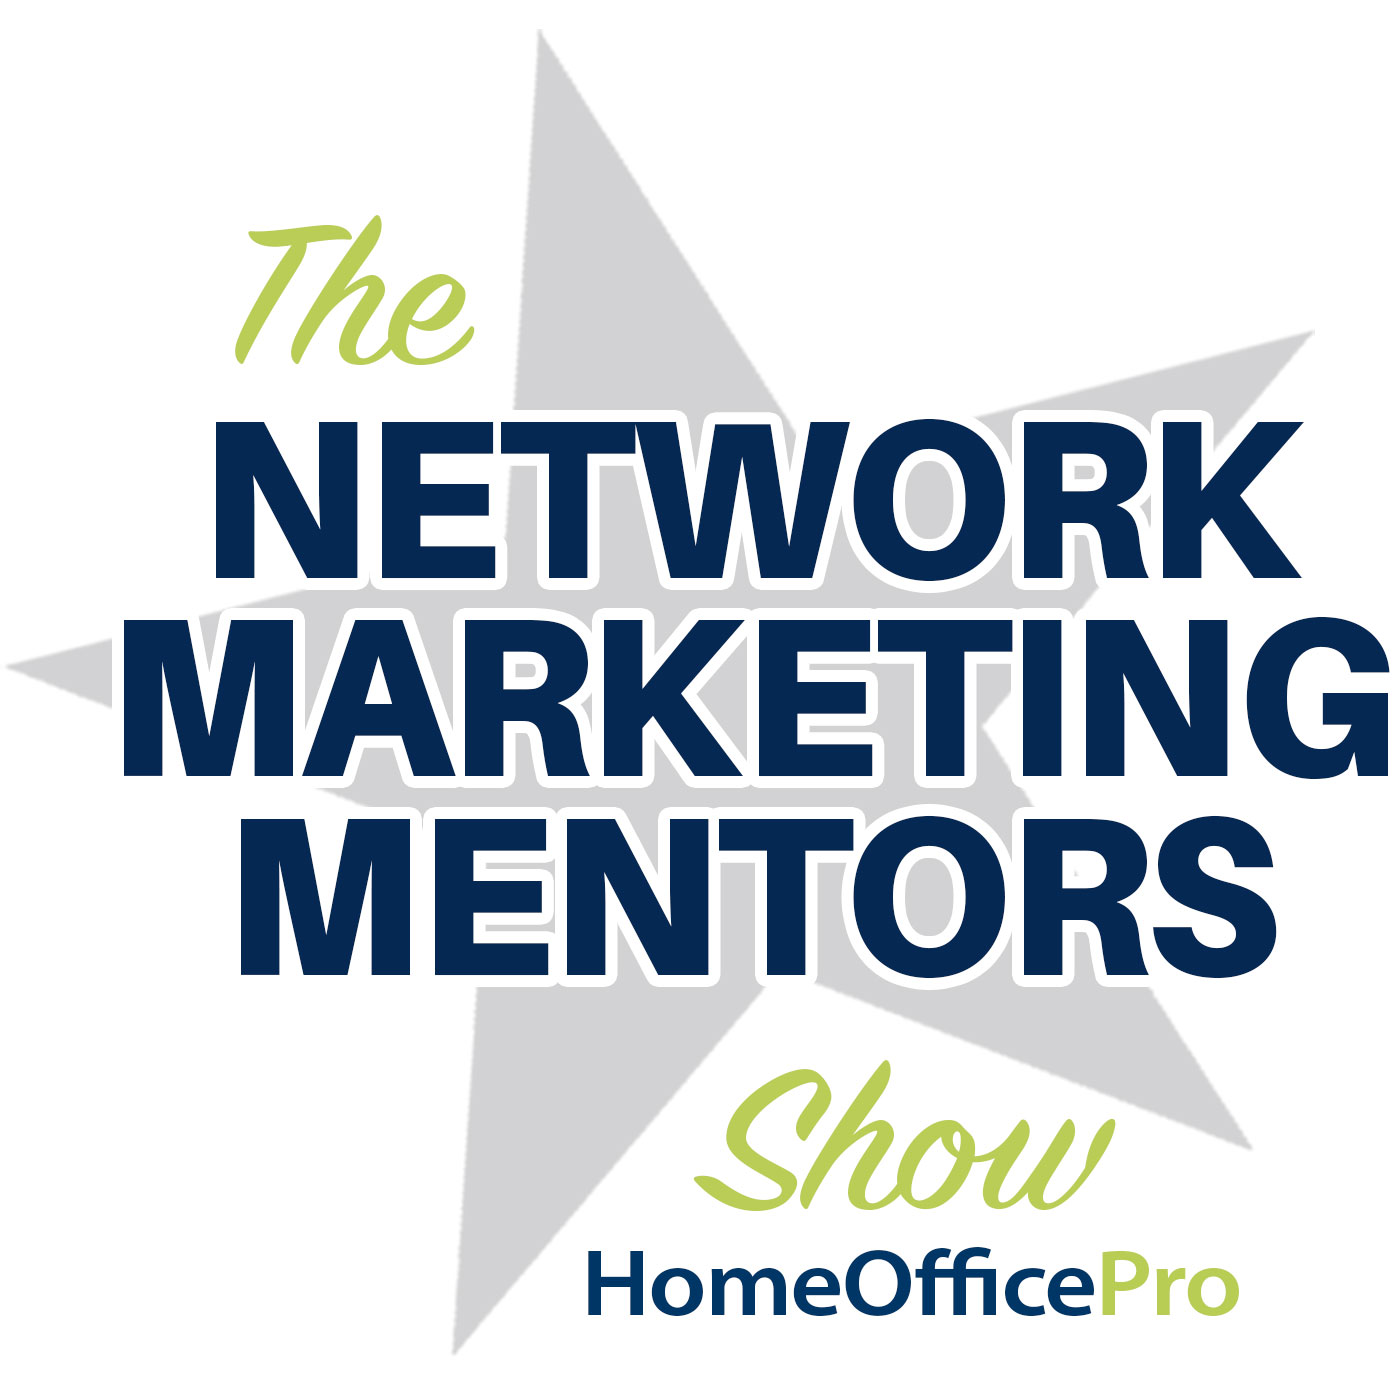 The Network Marketing Mentors Show